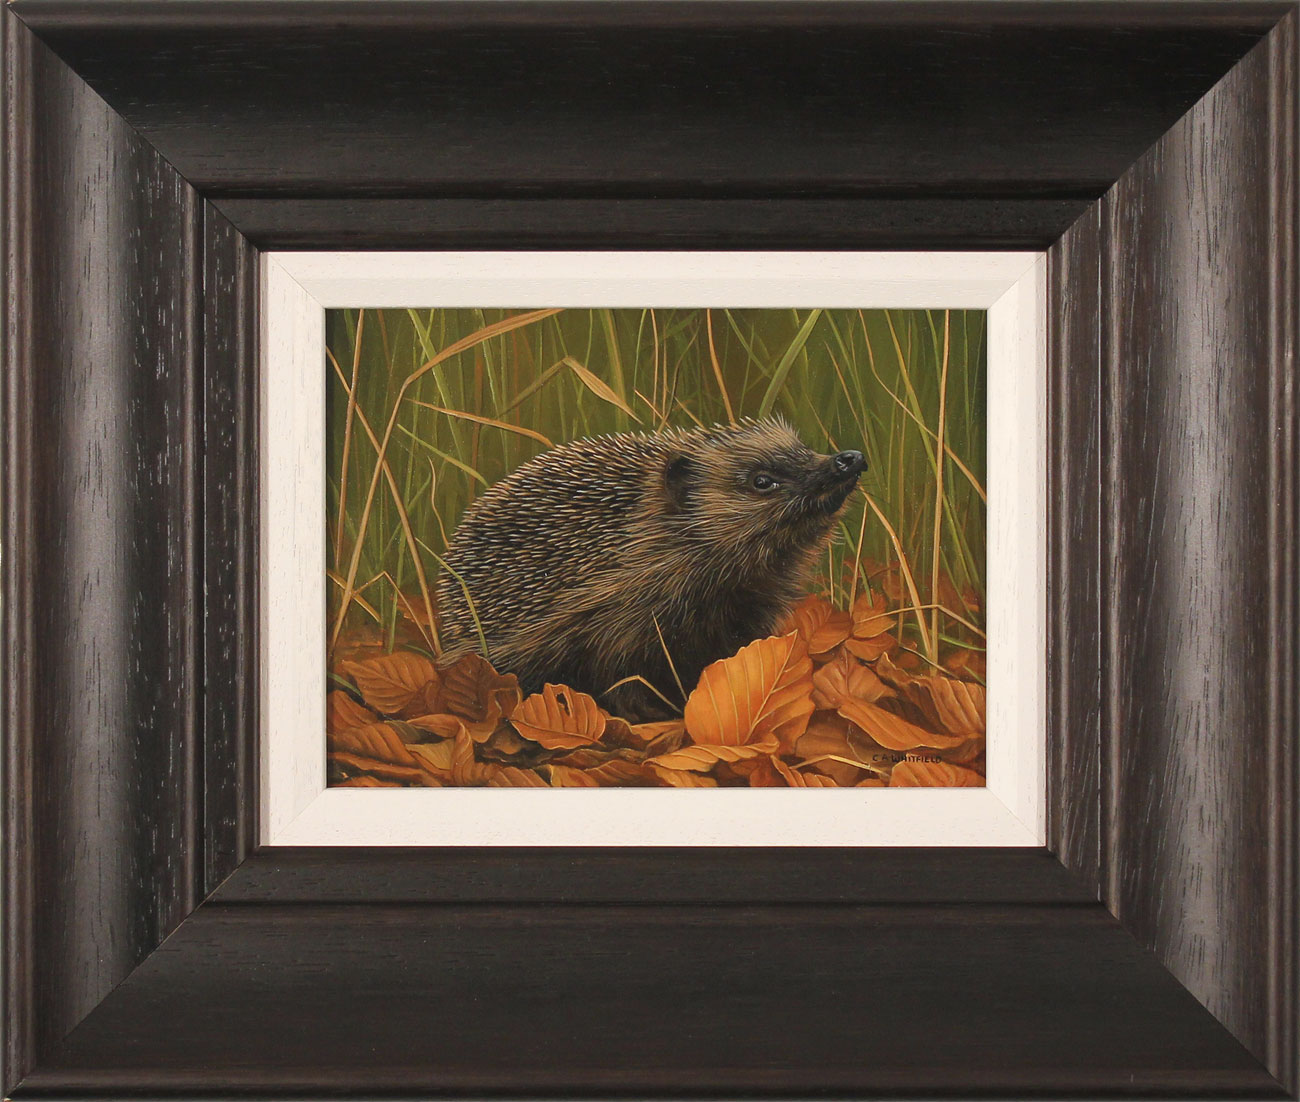 Carl Whitfield, Original oil painting on panel, Hedgehog, click to enlarge